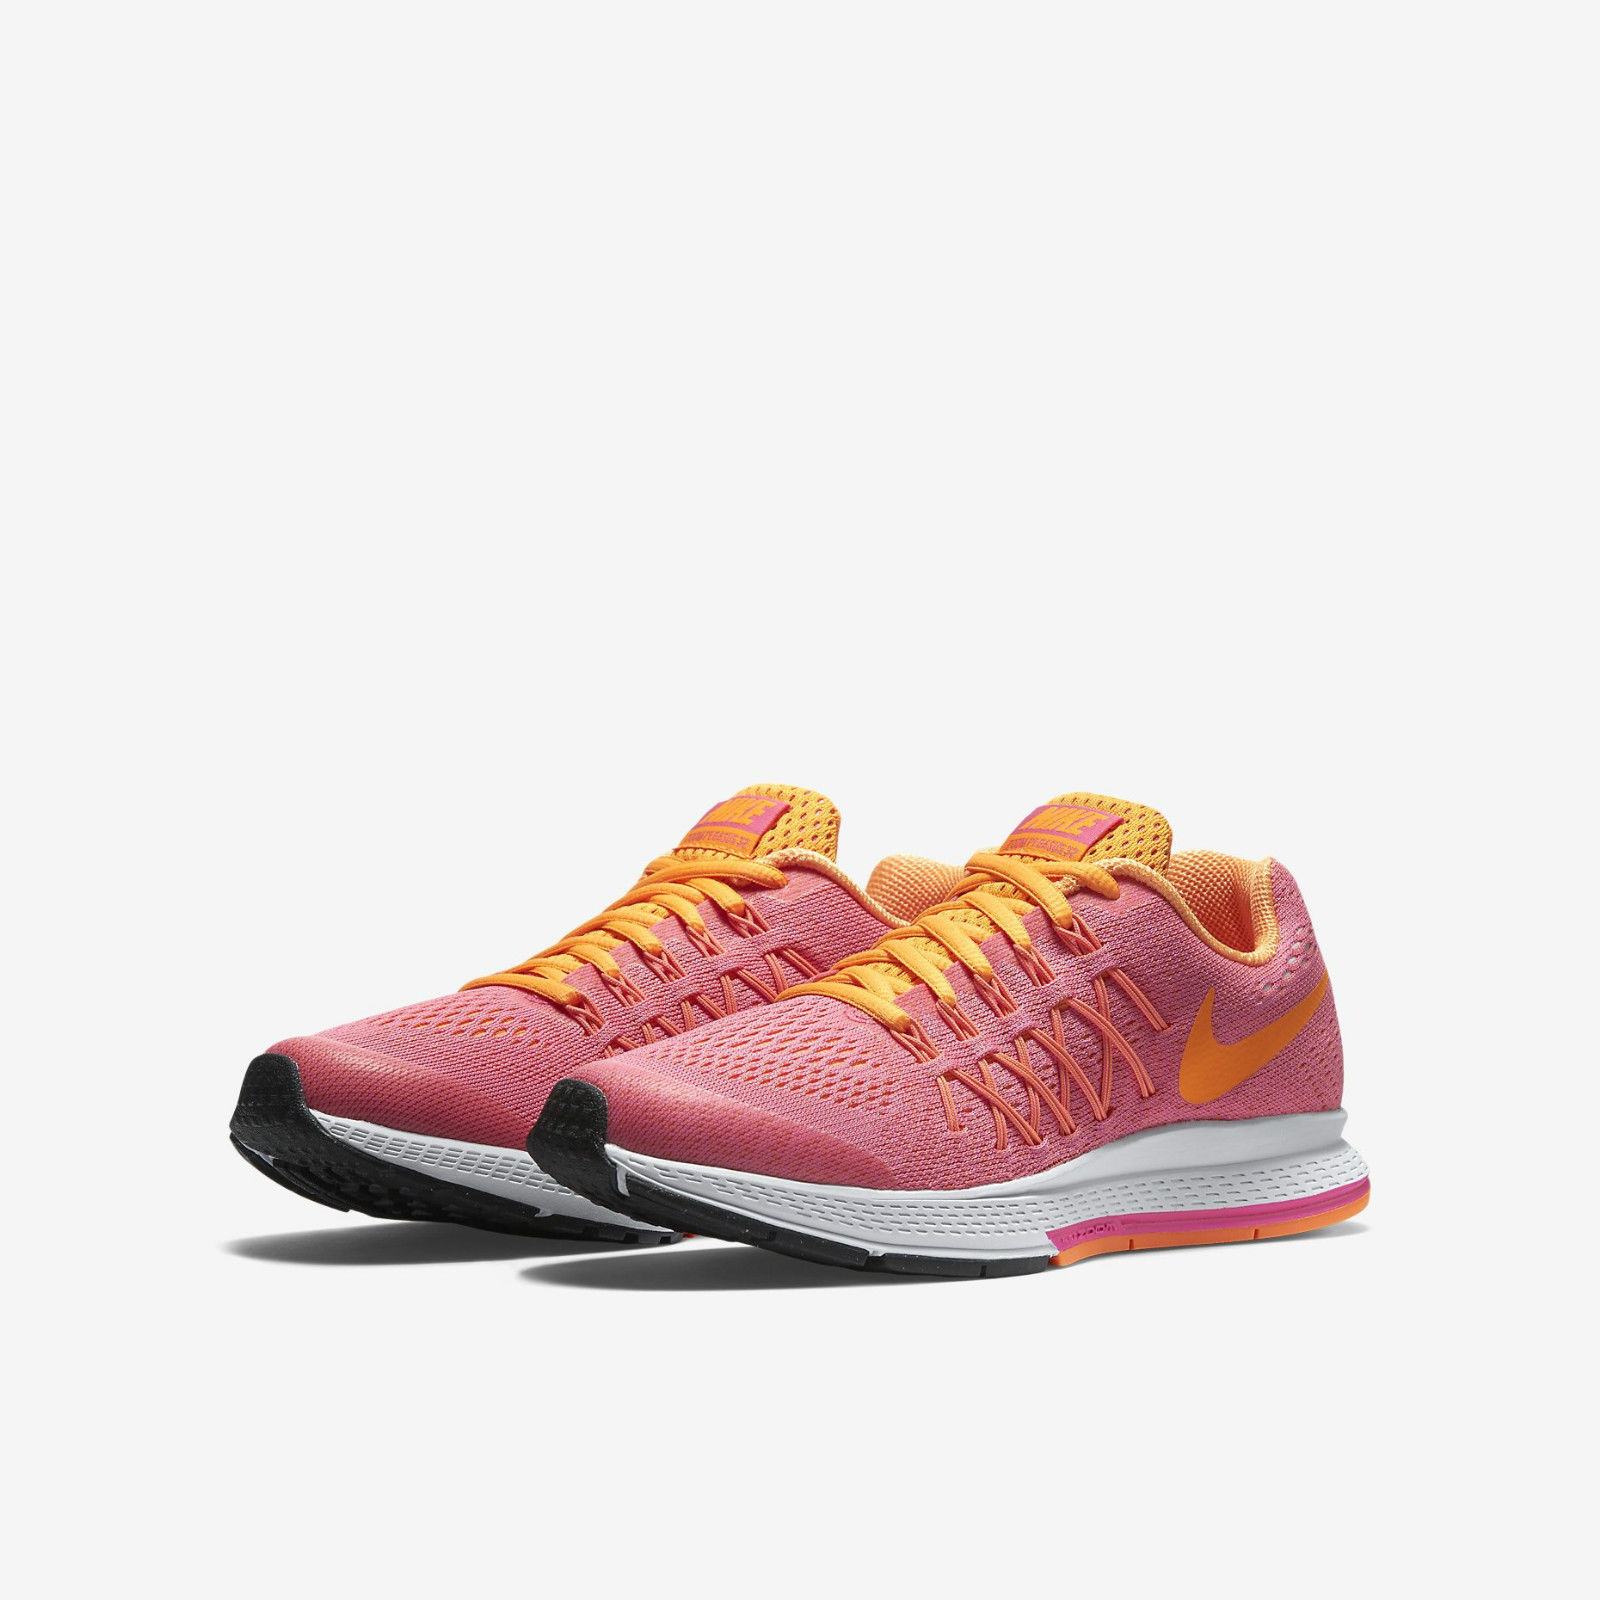 sneakers for cheap a644c 336c4 SCARPE DONNA NIKE ORIGINALE ZOOM PEGASUS 32 759972 RUNNING SHOES AI 201617  NEW